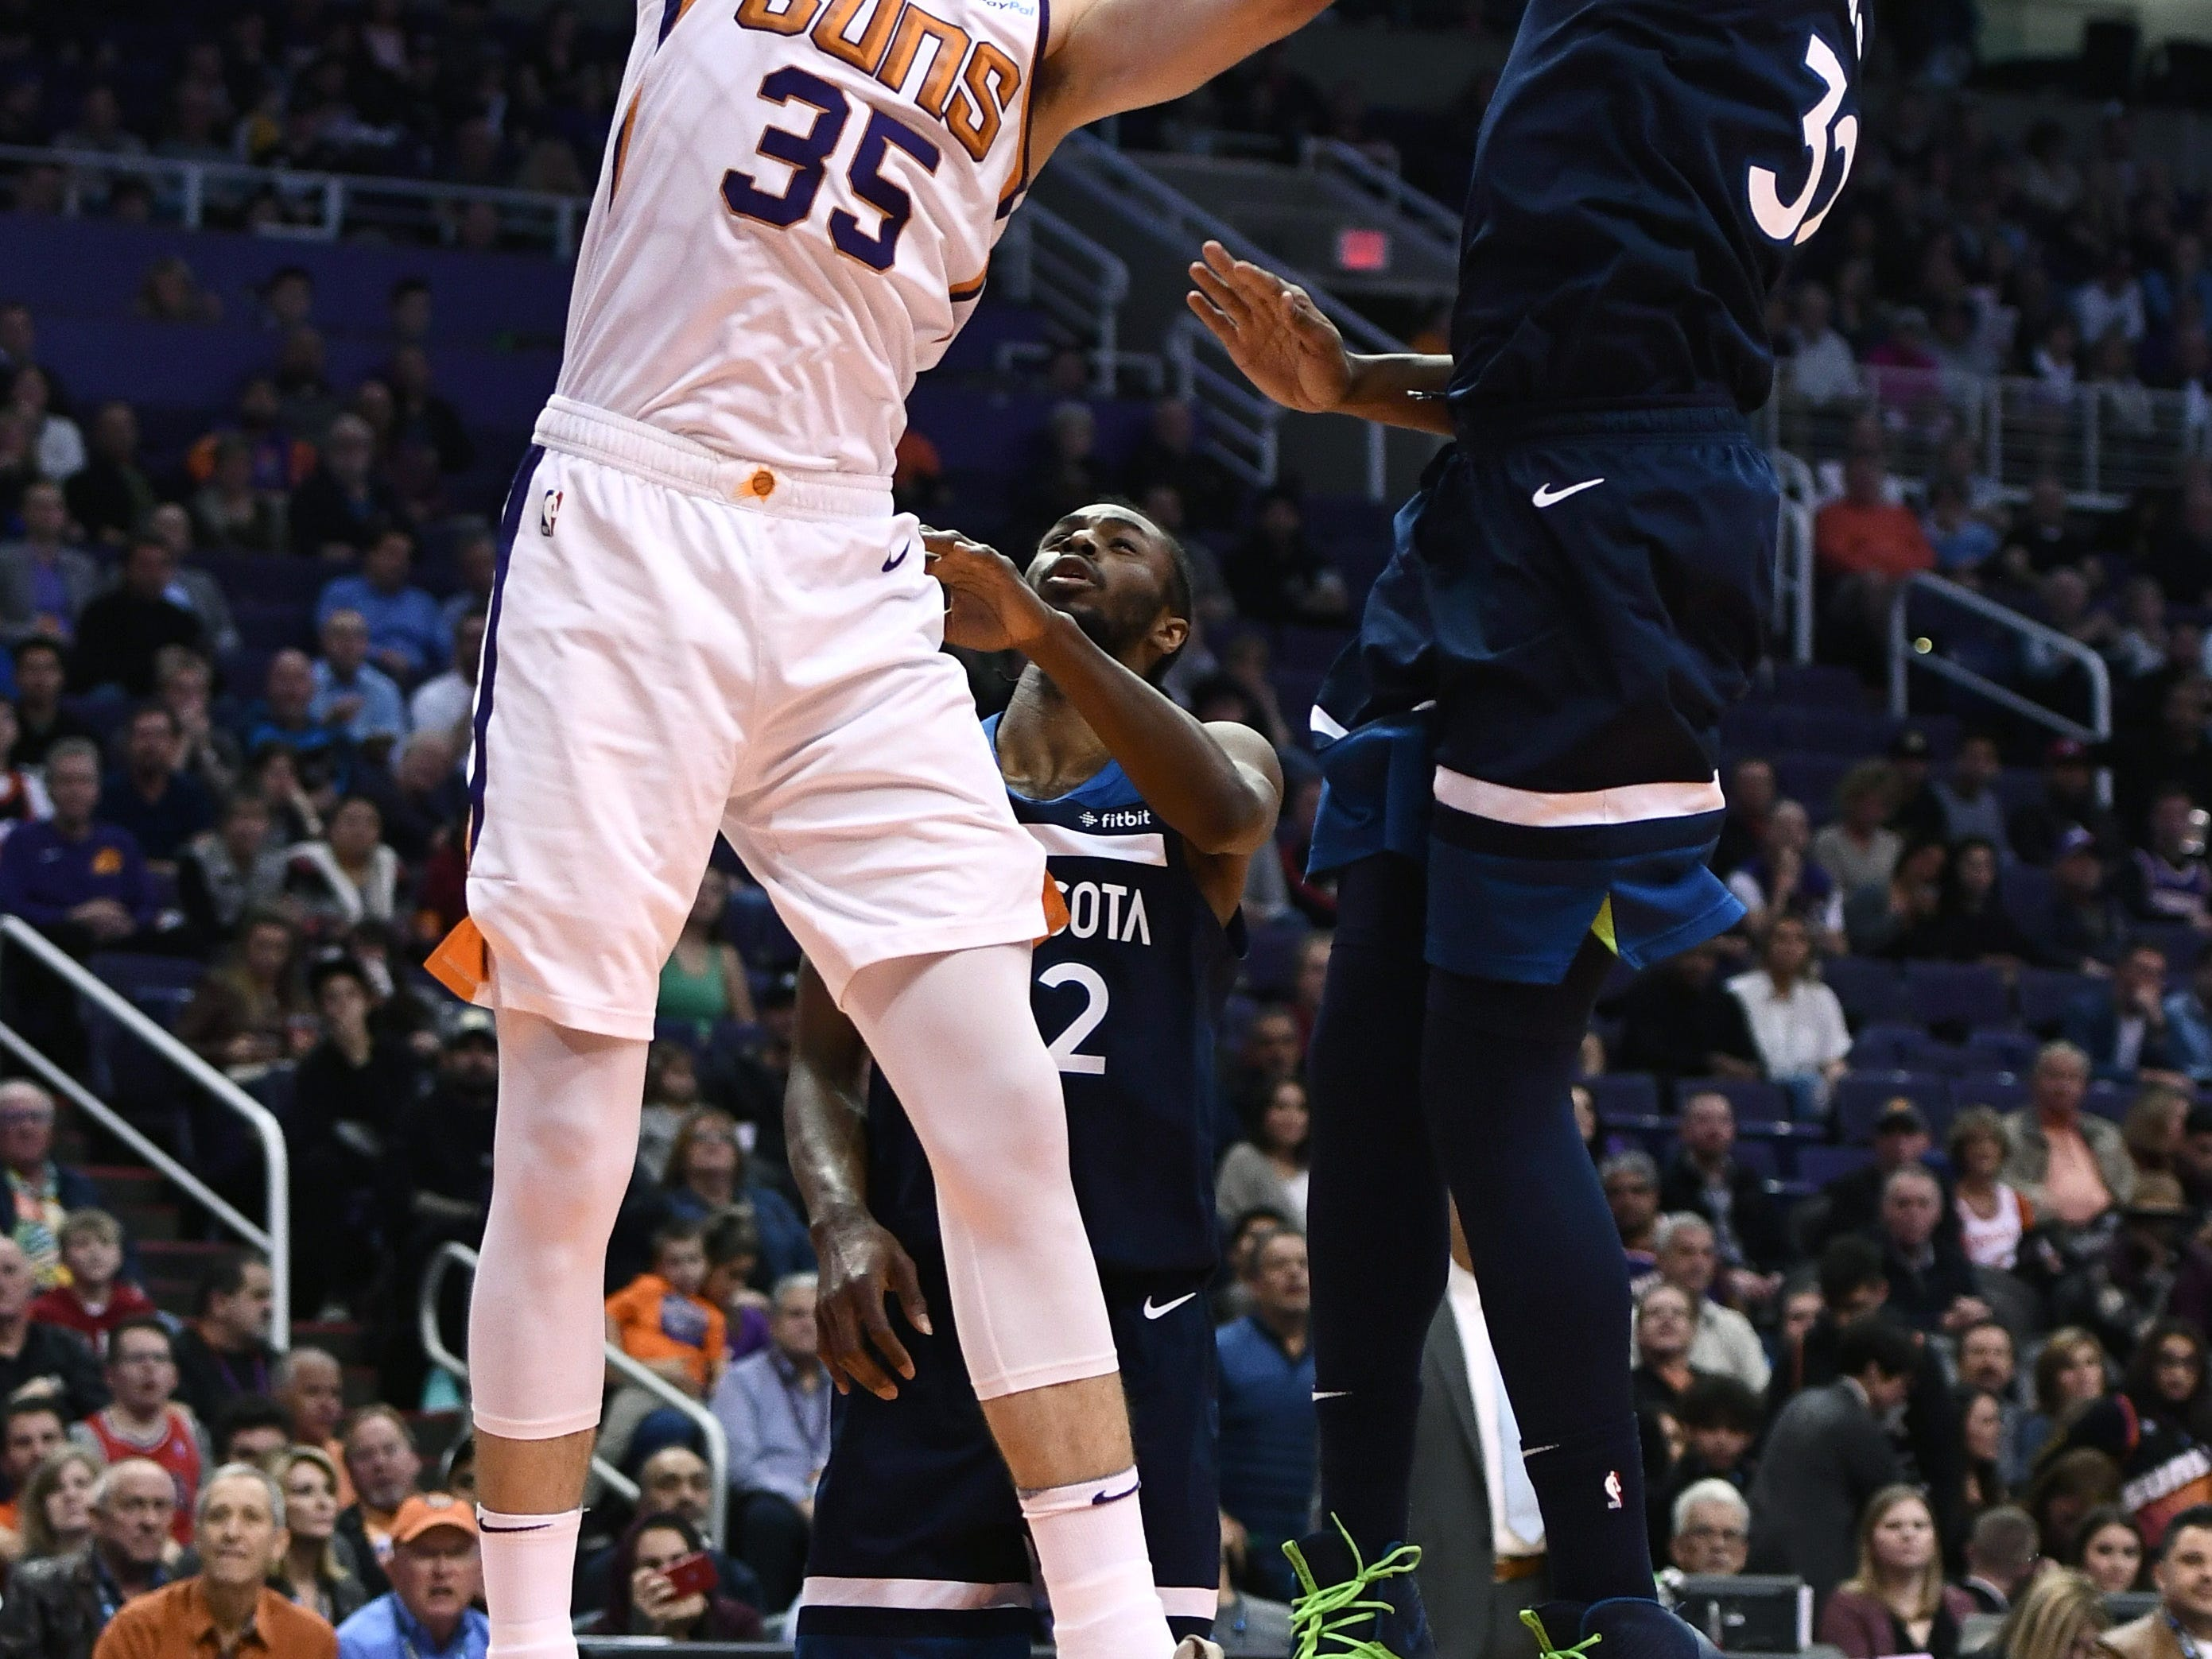 Jan 22, 2019; Phoenix, AZ, USA; Phoenix Suns forward Dragan Bender (35) dunks the ball against Minnesota Timberwolves center Karl-Anthony Towns (32) in the first half at Talking Stick Resort Arena. Mandatory Credit: Jennifer Stewart-USA TODAY Sports